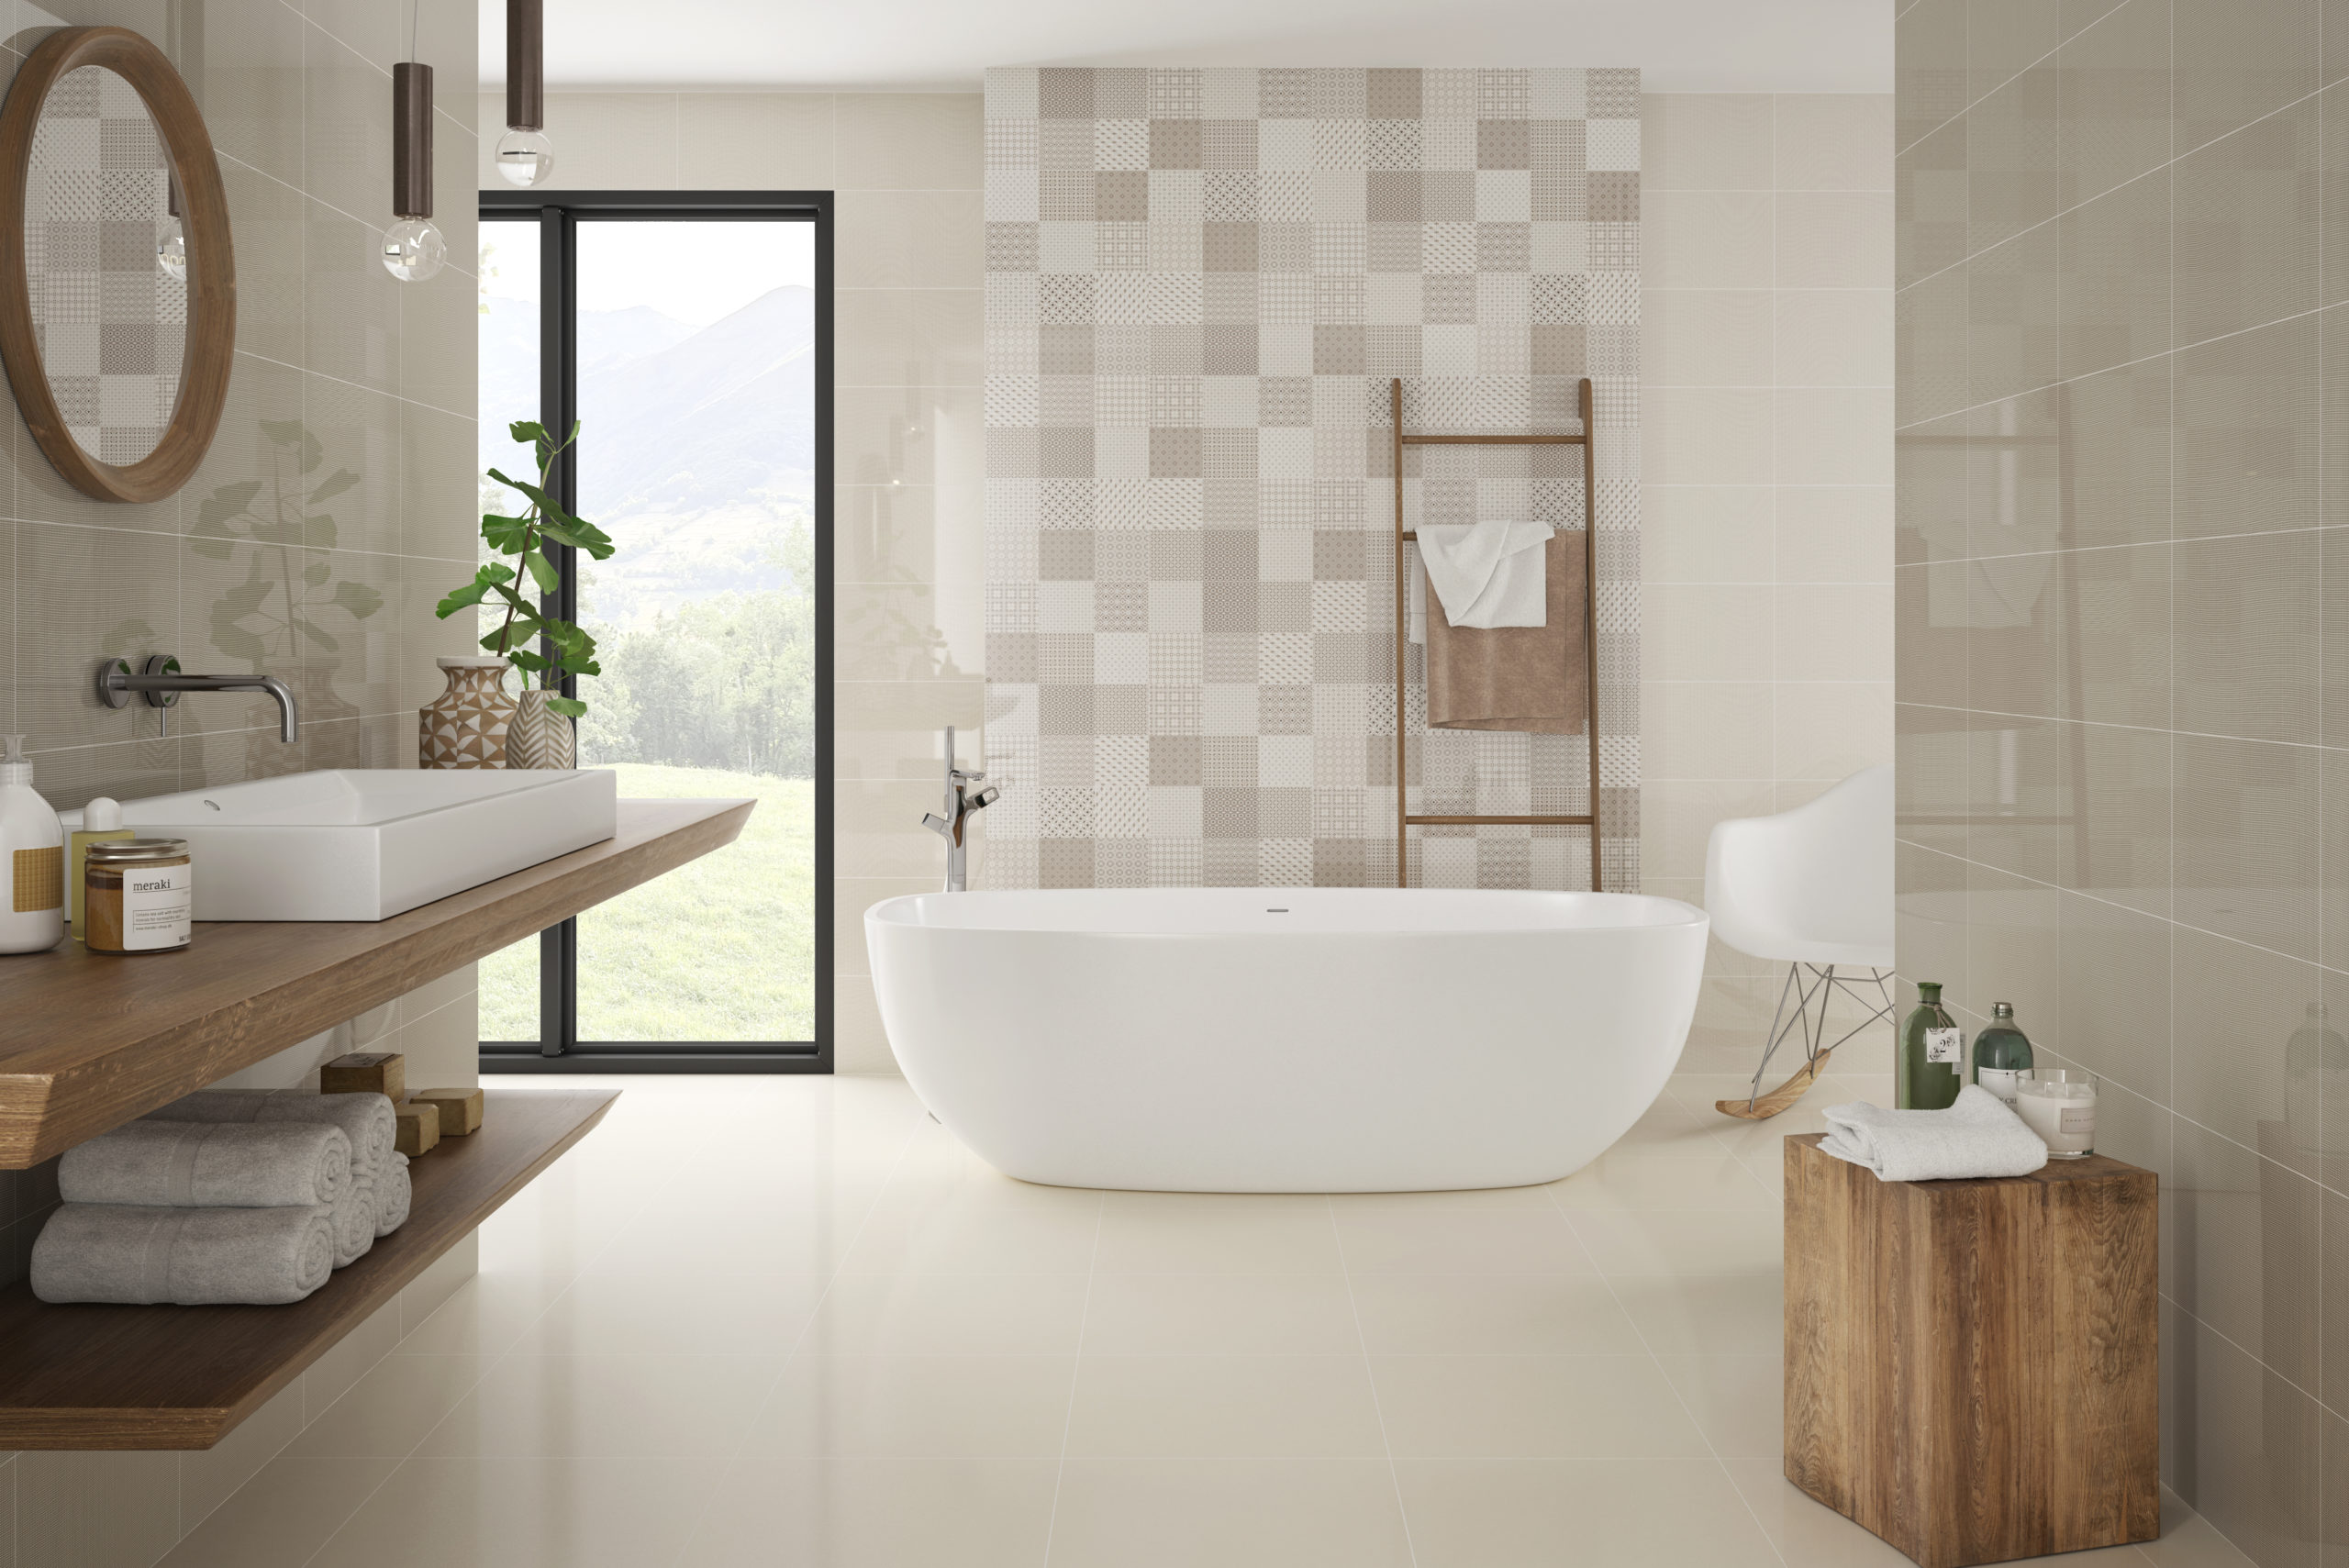 Tiles from Nemo Tile + Stone's Glow collection